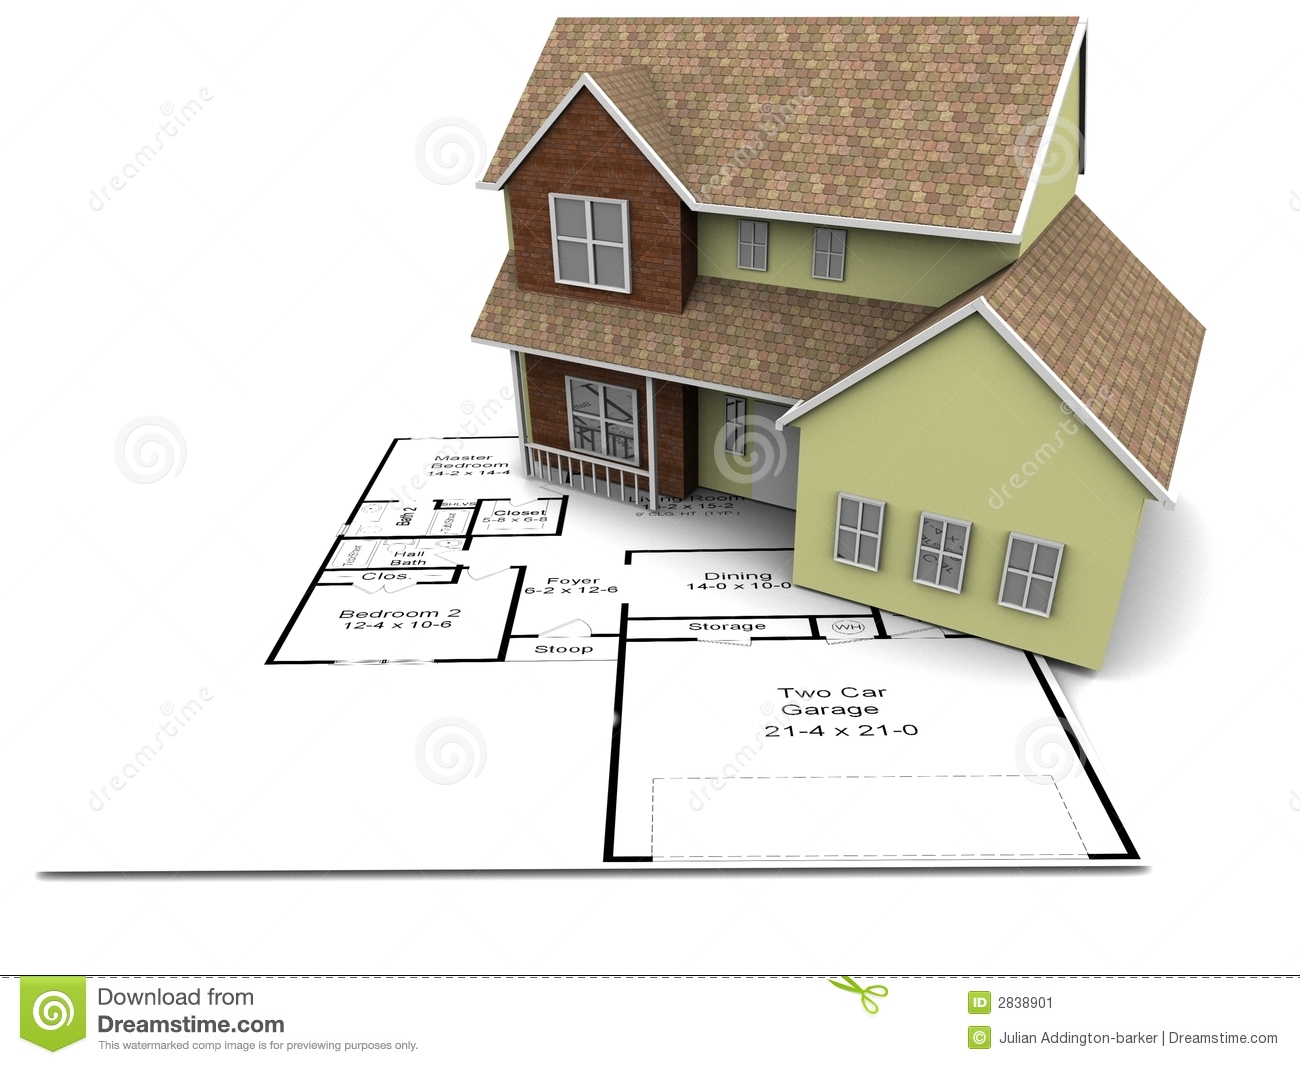 New house plans stock illustration illustration of house for New home building plans